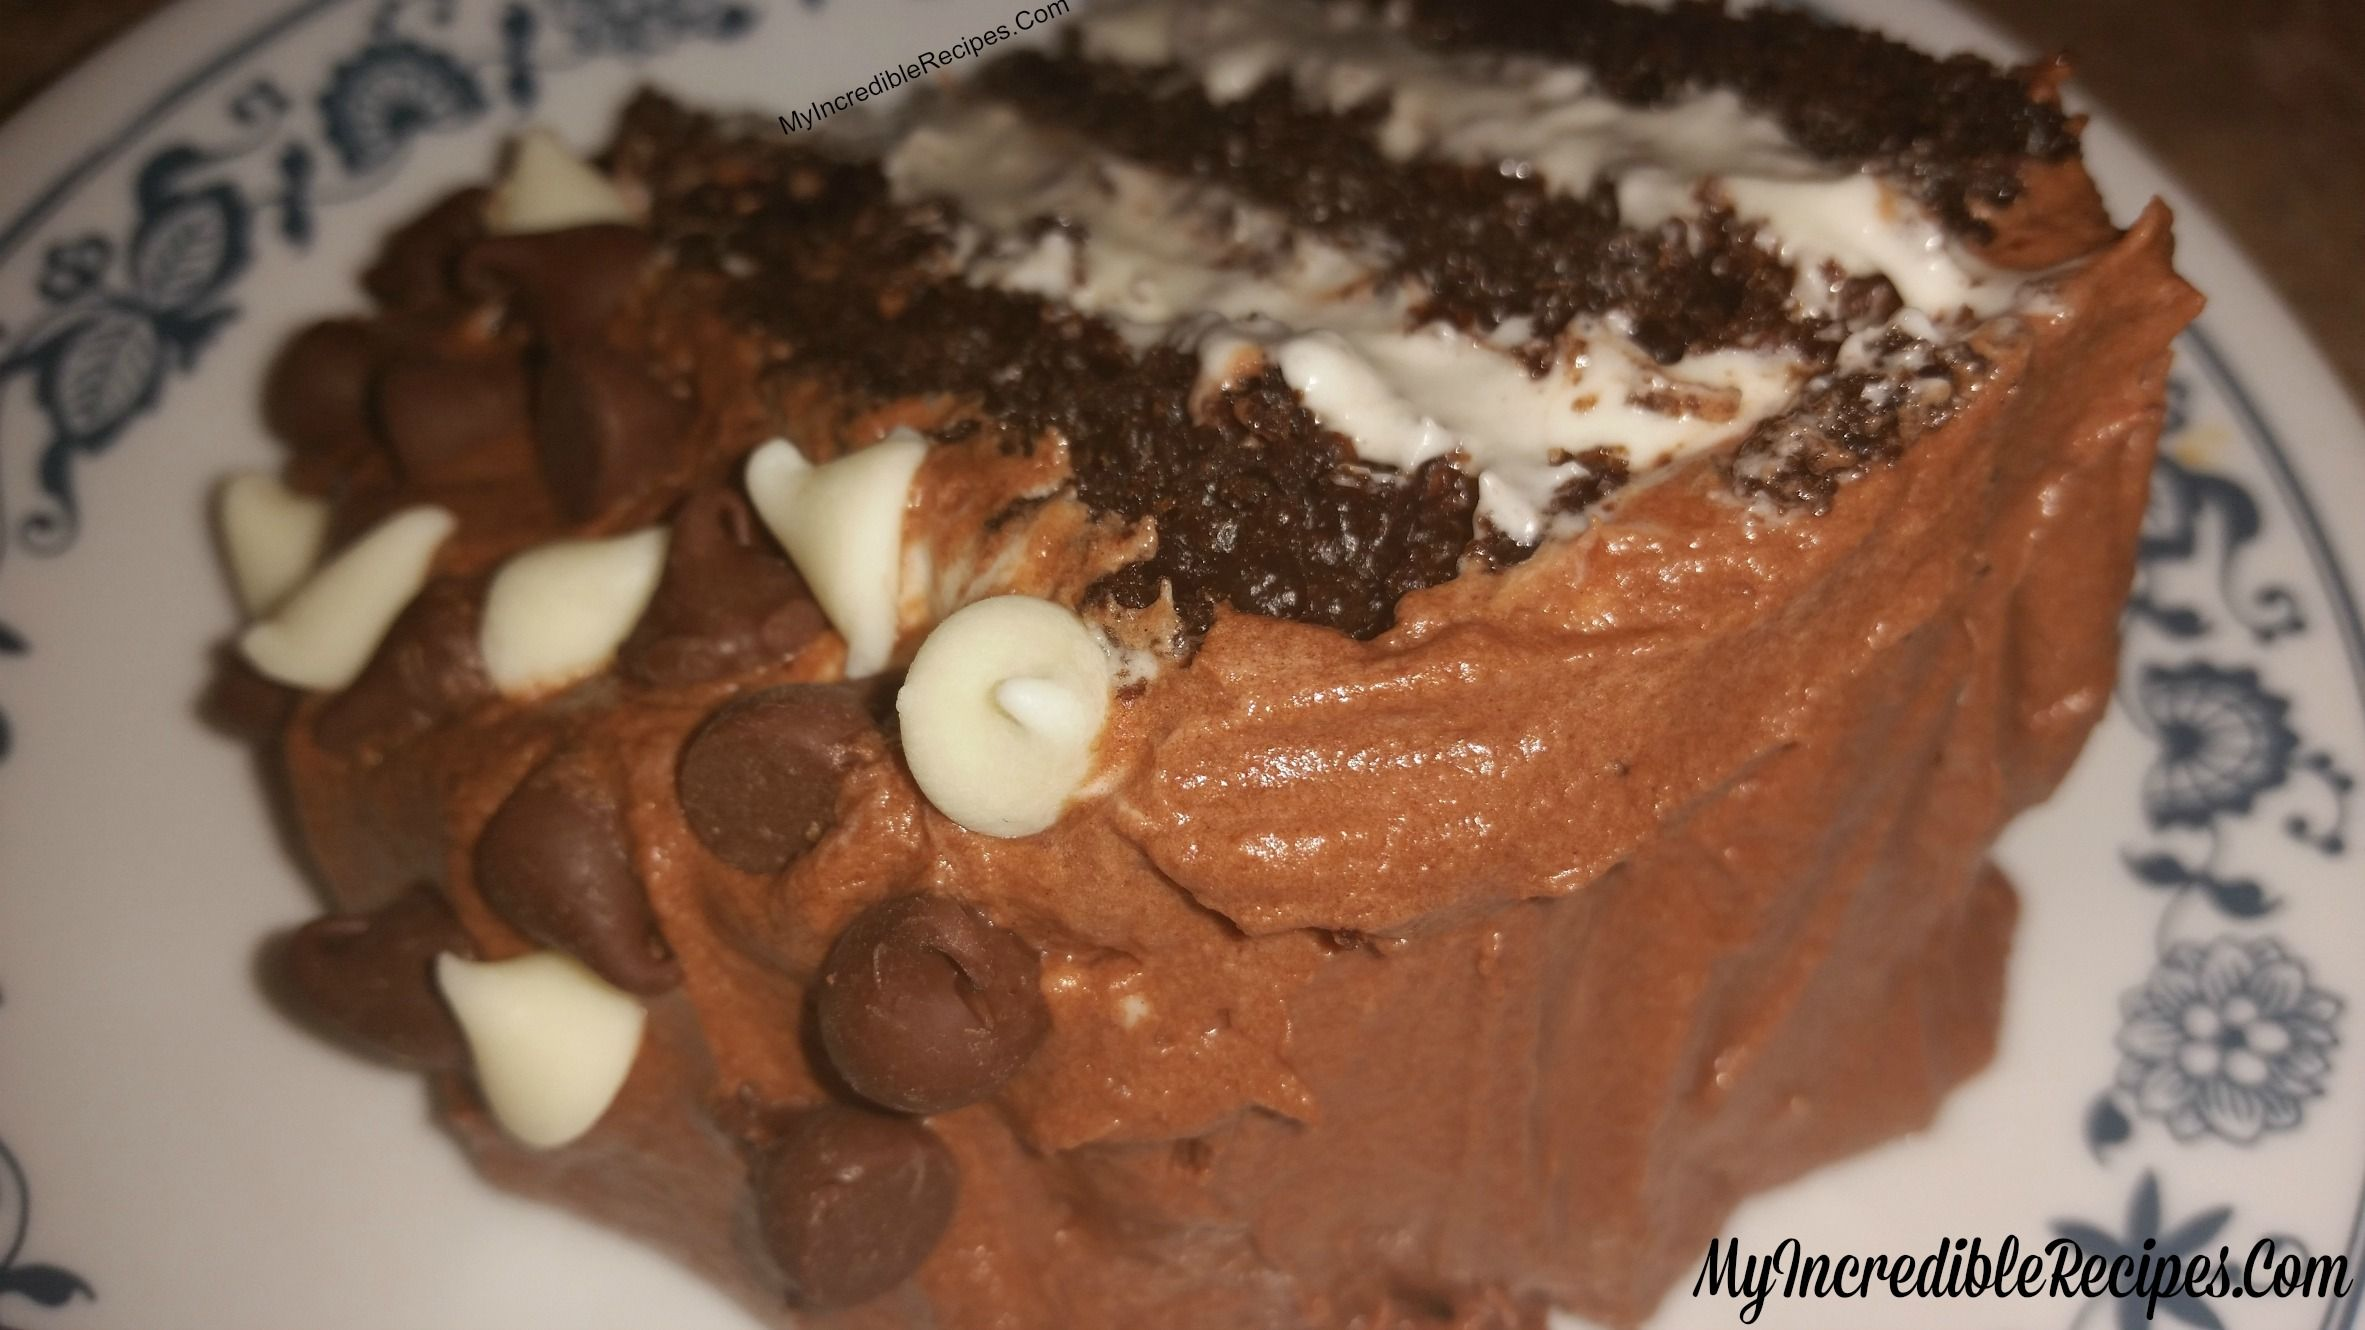 Check out Hersheys Chocolate Cake with Cream Cheese Filling ...